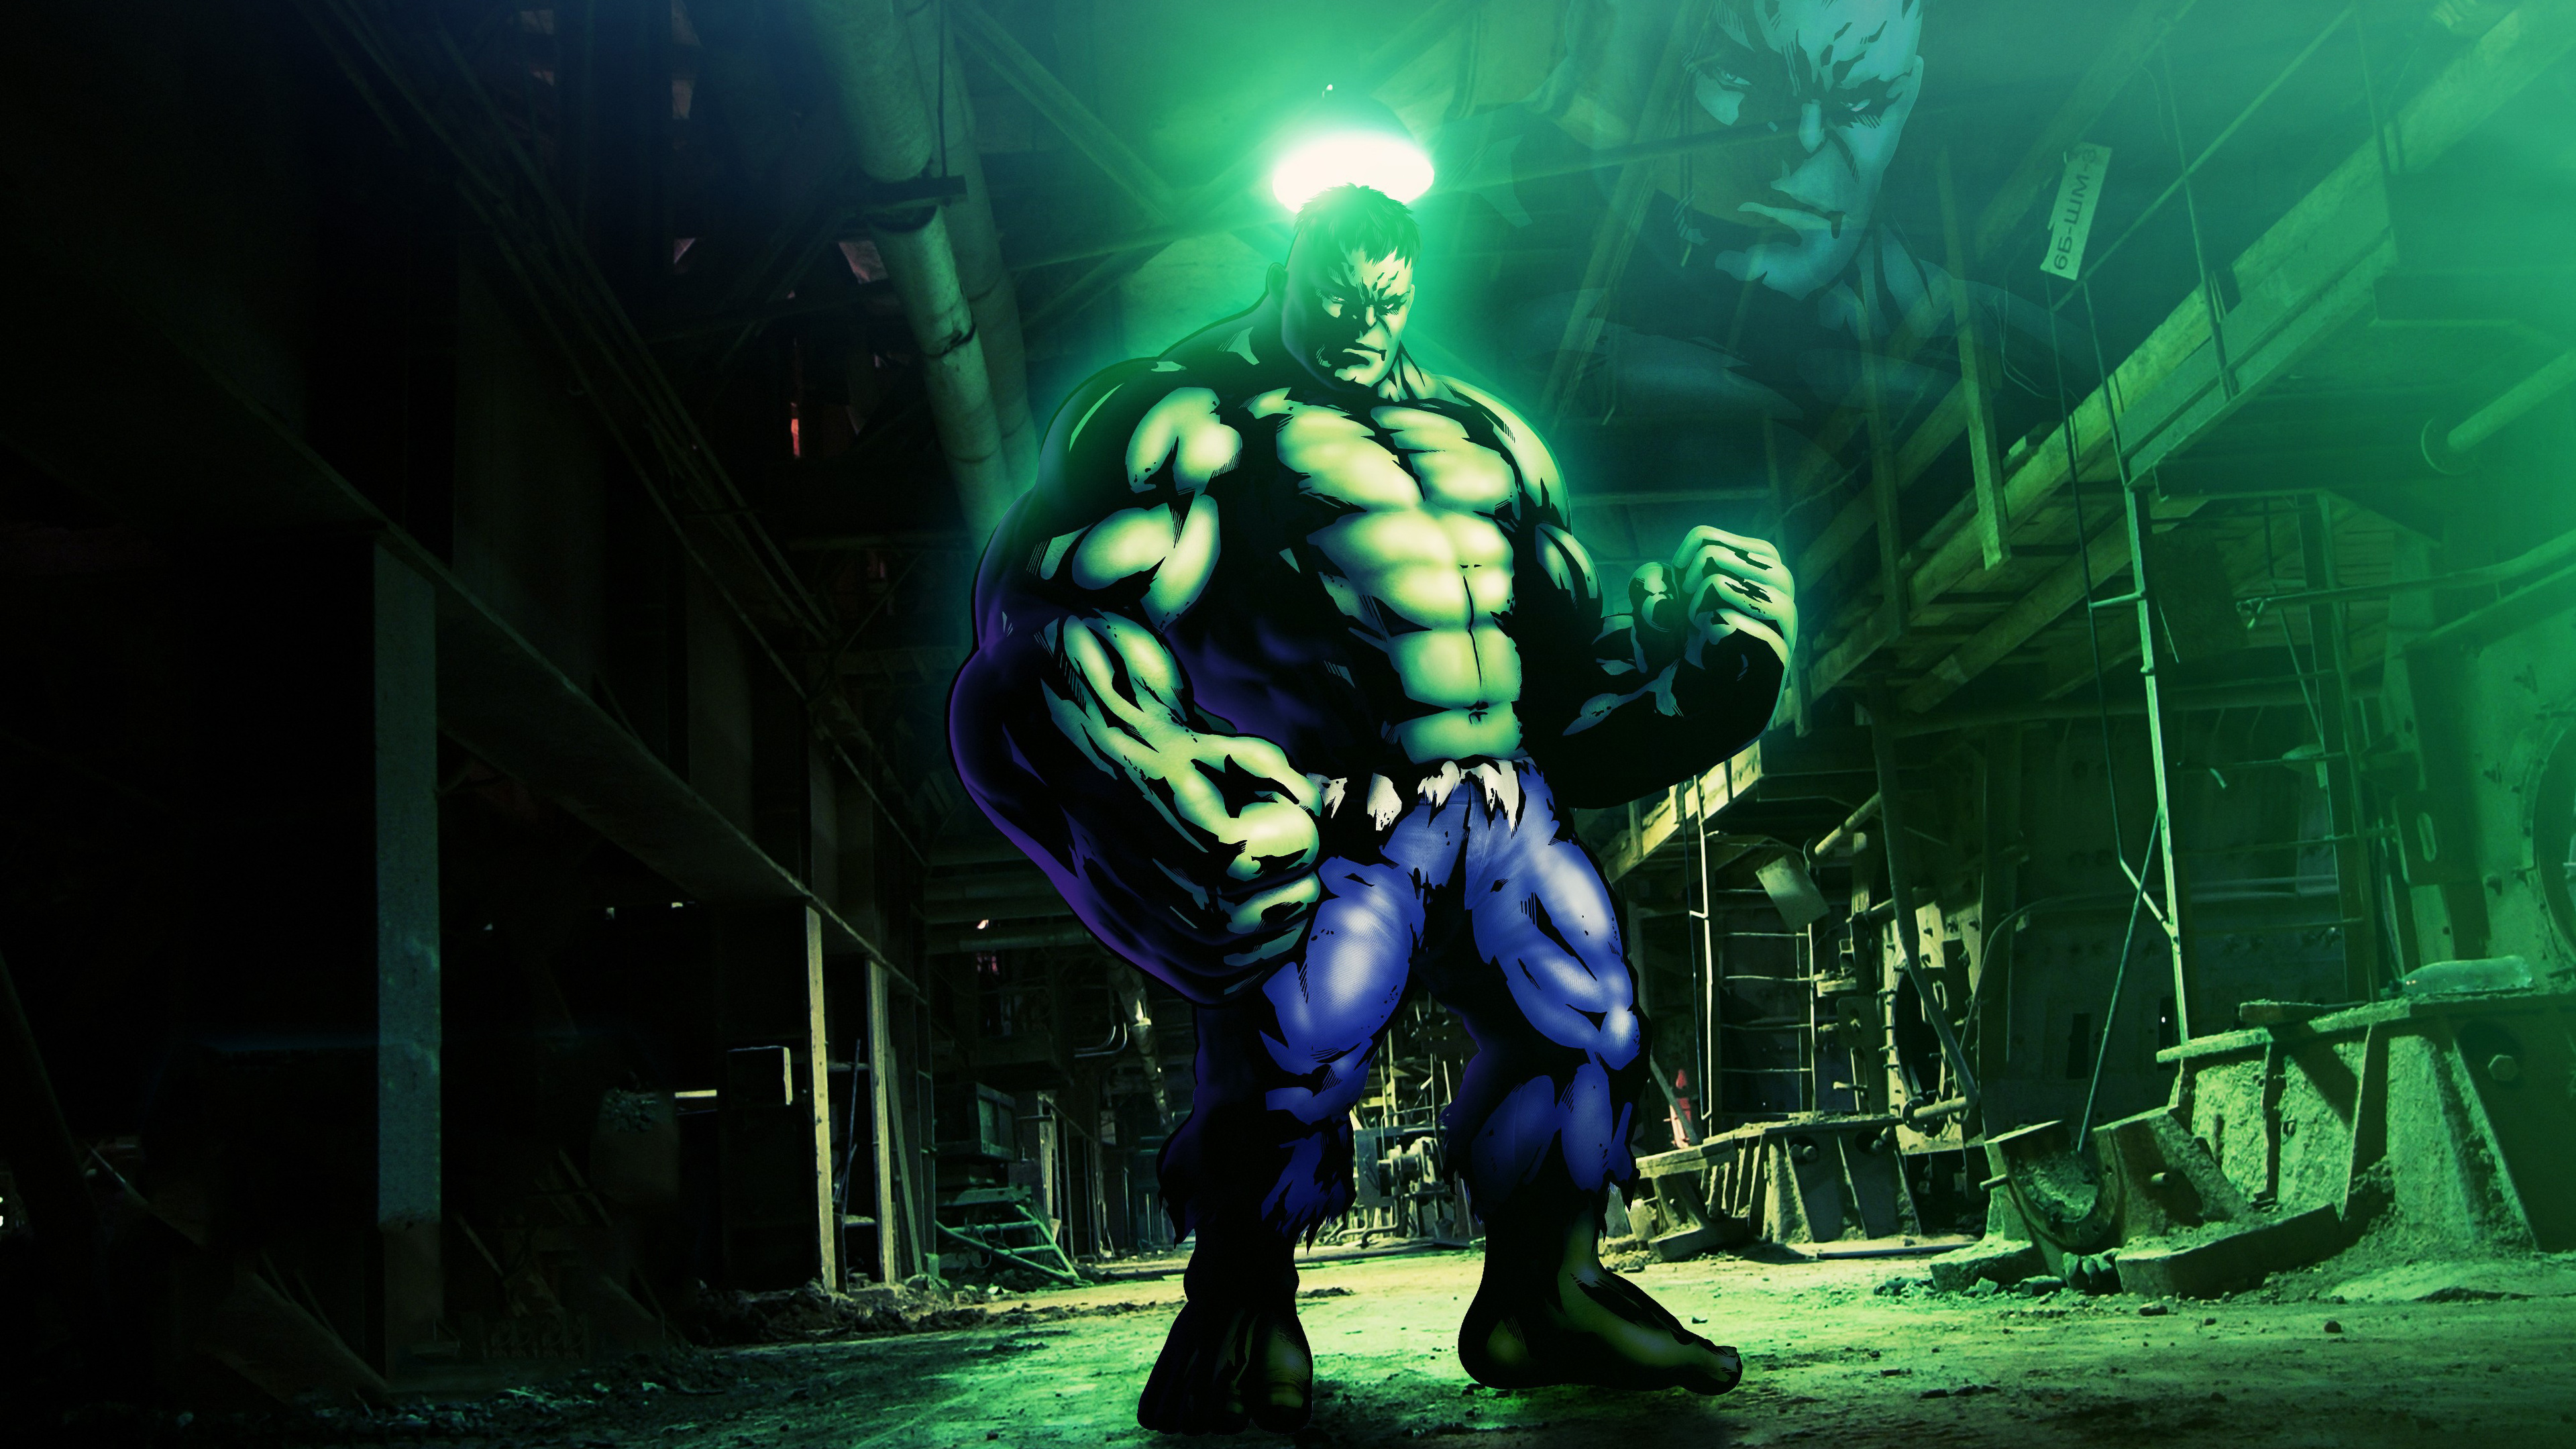 marvel vs capcom 3 hulk 4k 1537692361 - Marvel Vs Capcom 3 Hulk 4k - marvel vs capcom infinite wallpapers, hulk wallpapers, hd-wallpapers, games wallpapers, 4k-wallpapers, 2017 games wallpapers